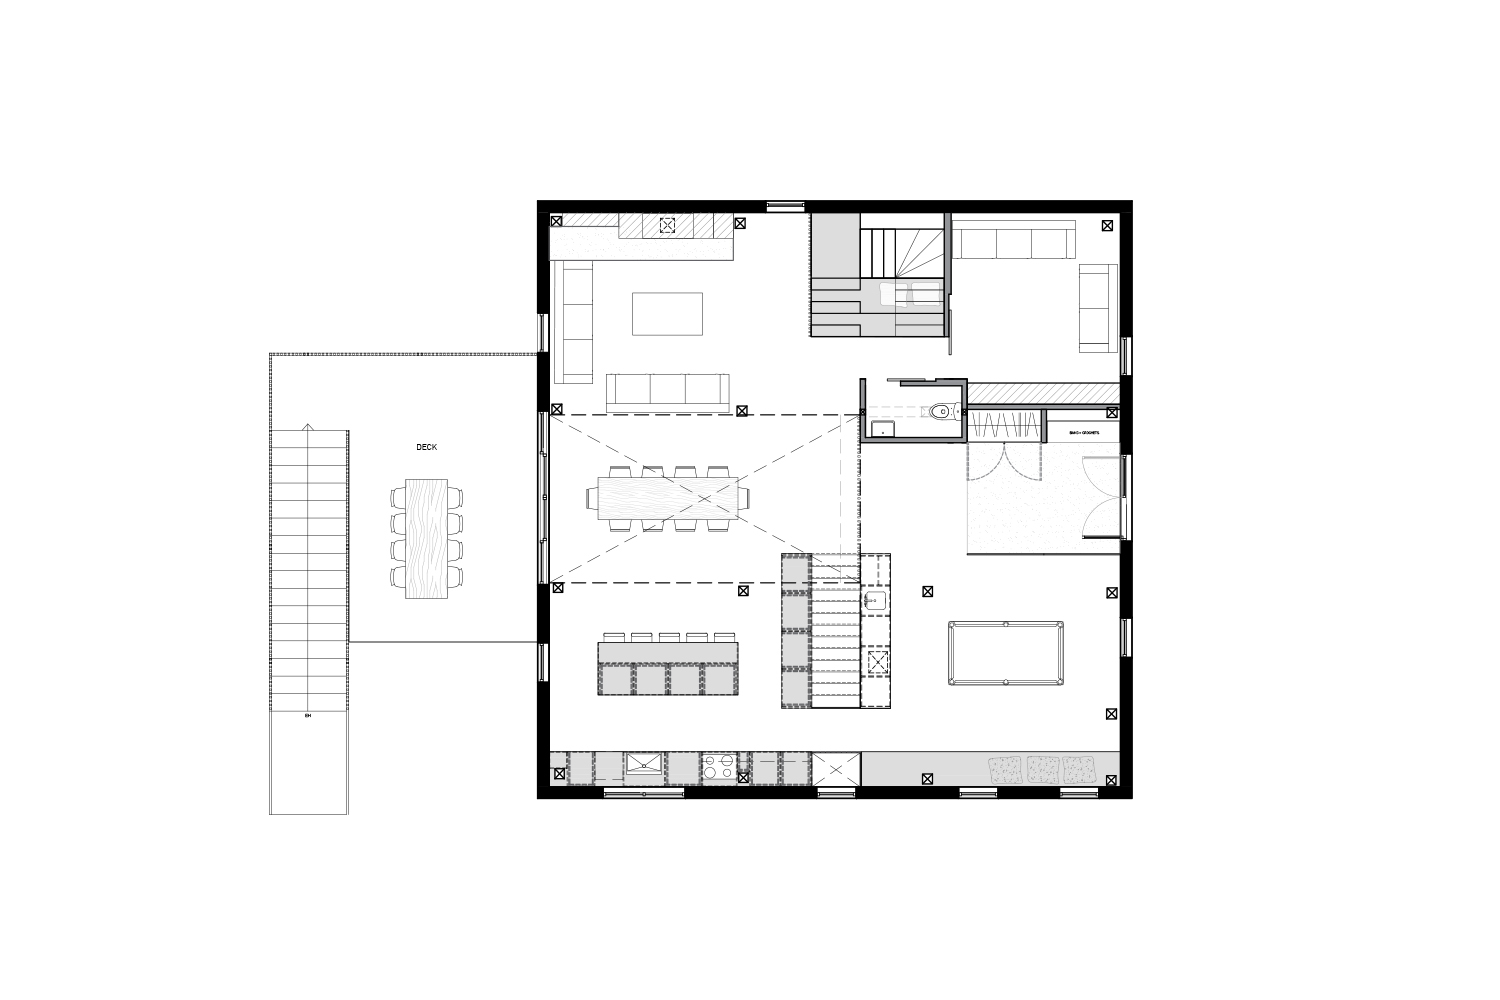 Plan of development of the ground floor of a chalet